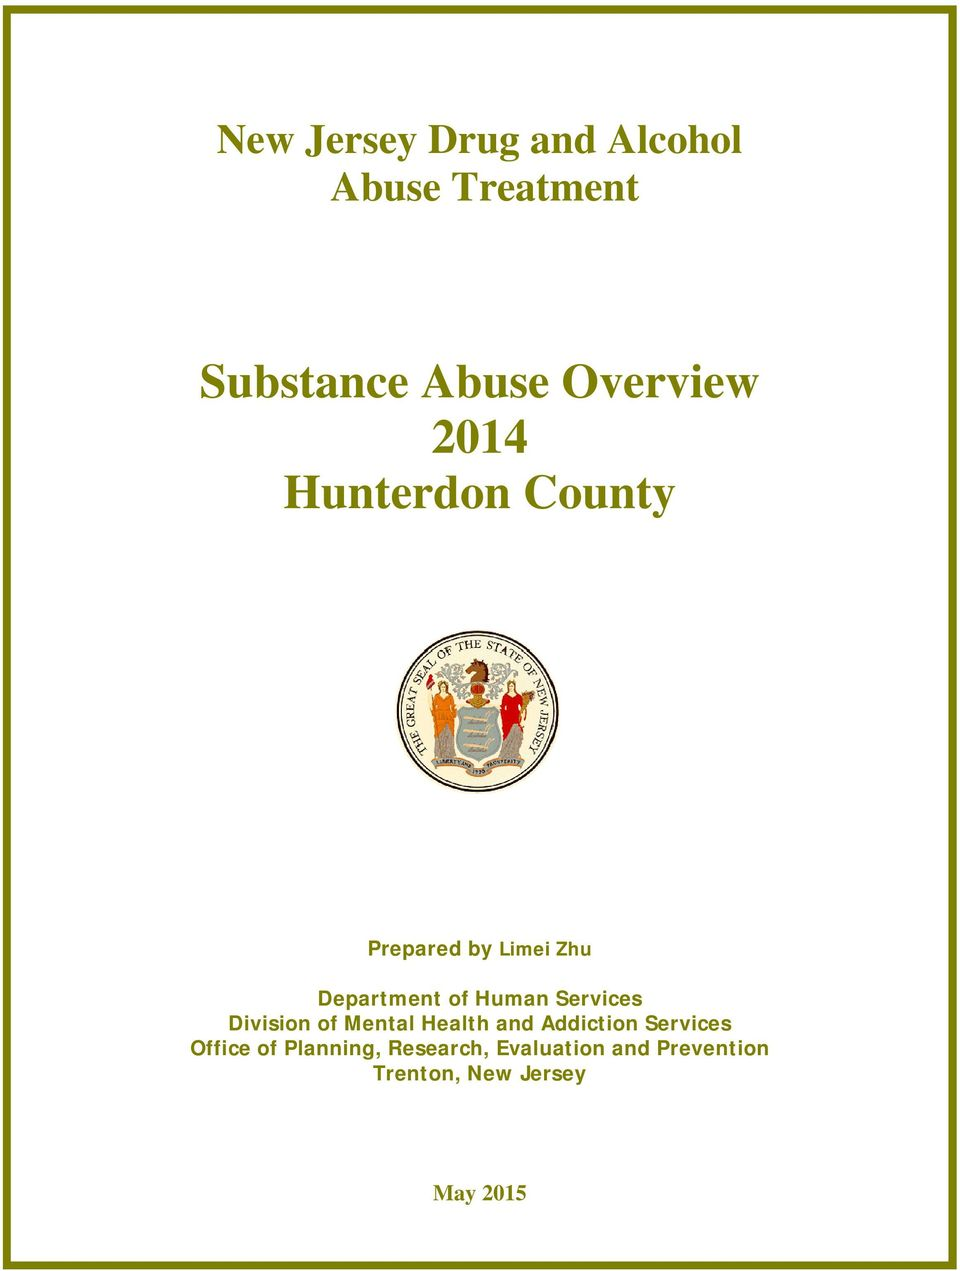 Services Division of Mental Health and Addiction Services Office of